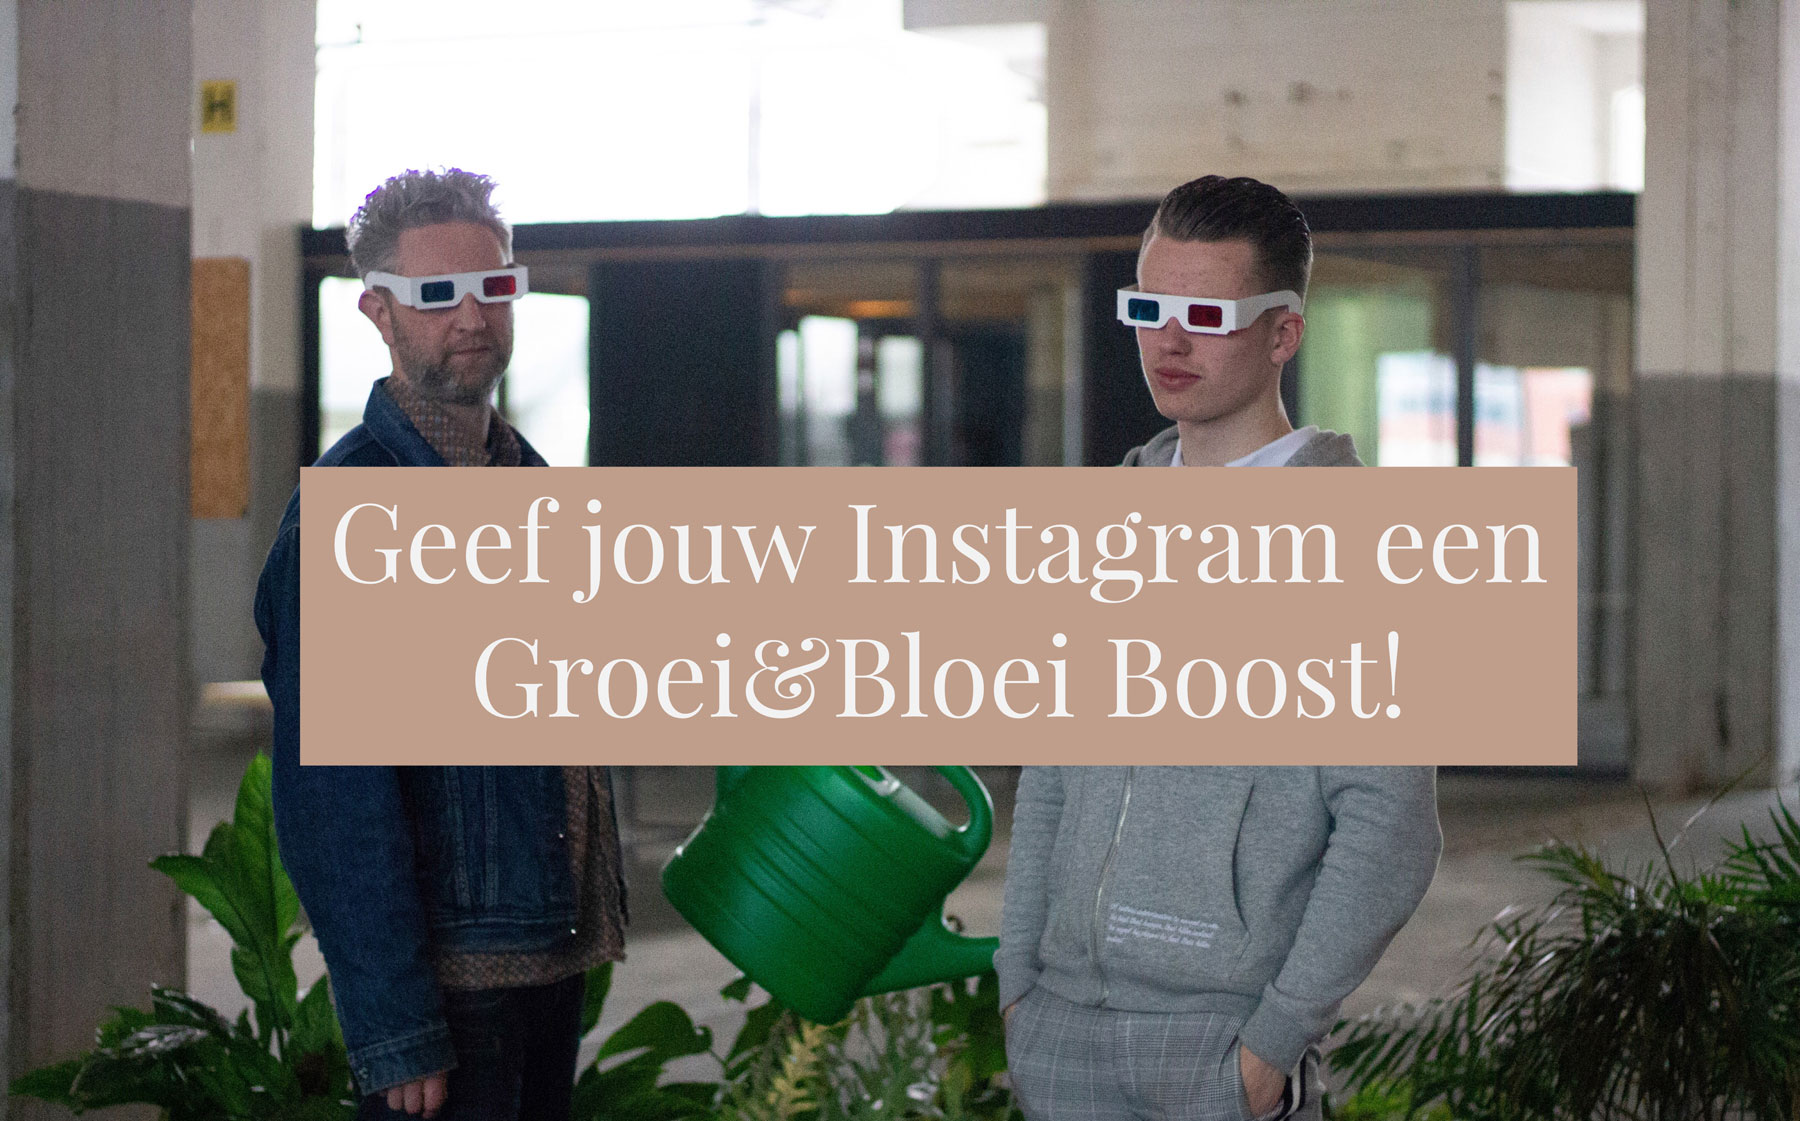 Instagram Groei&Bloei Team